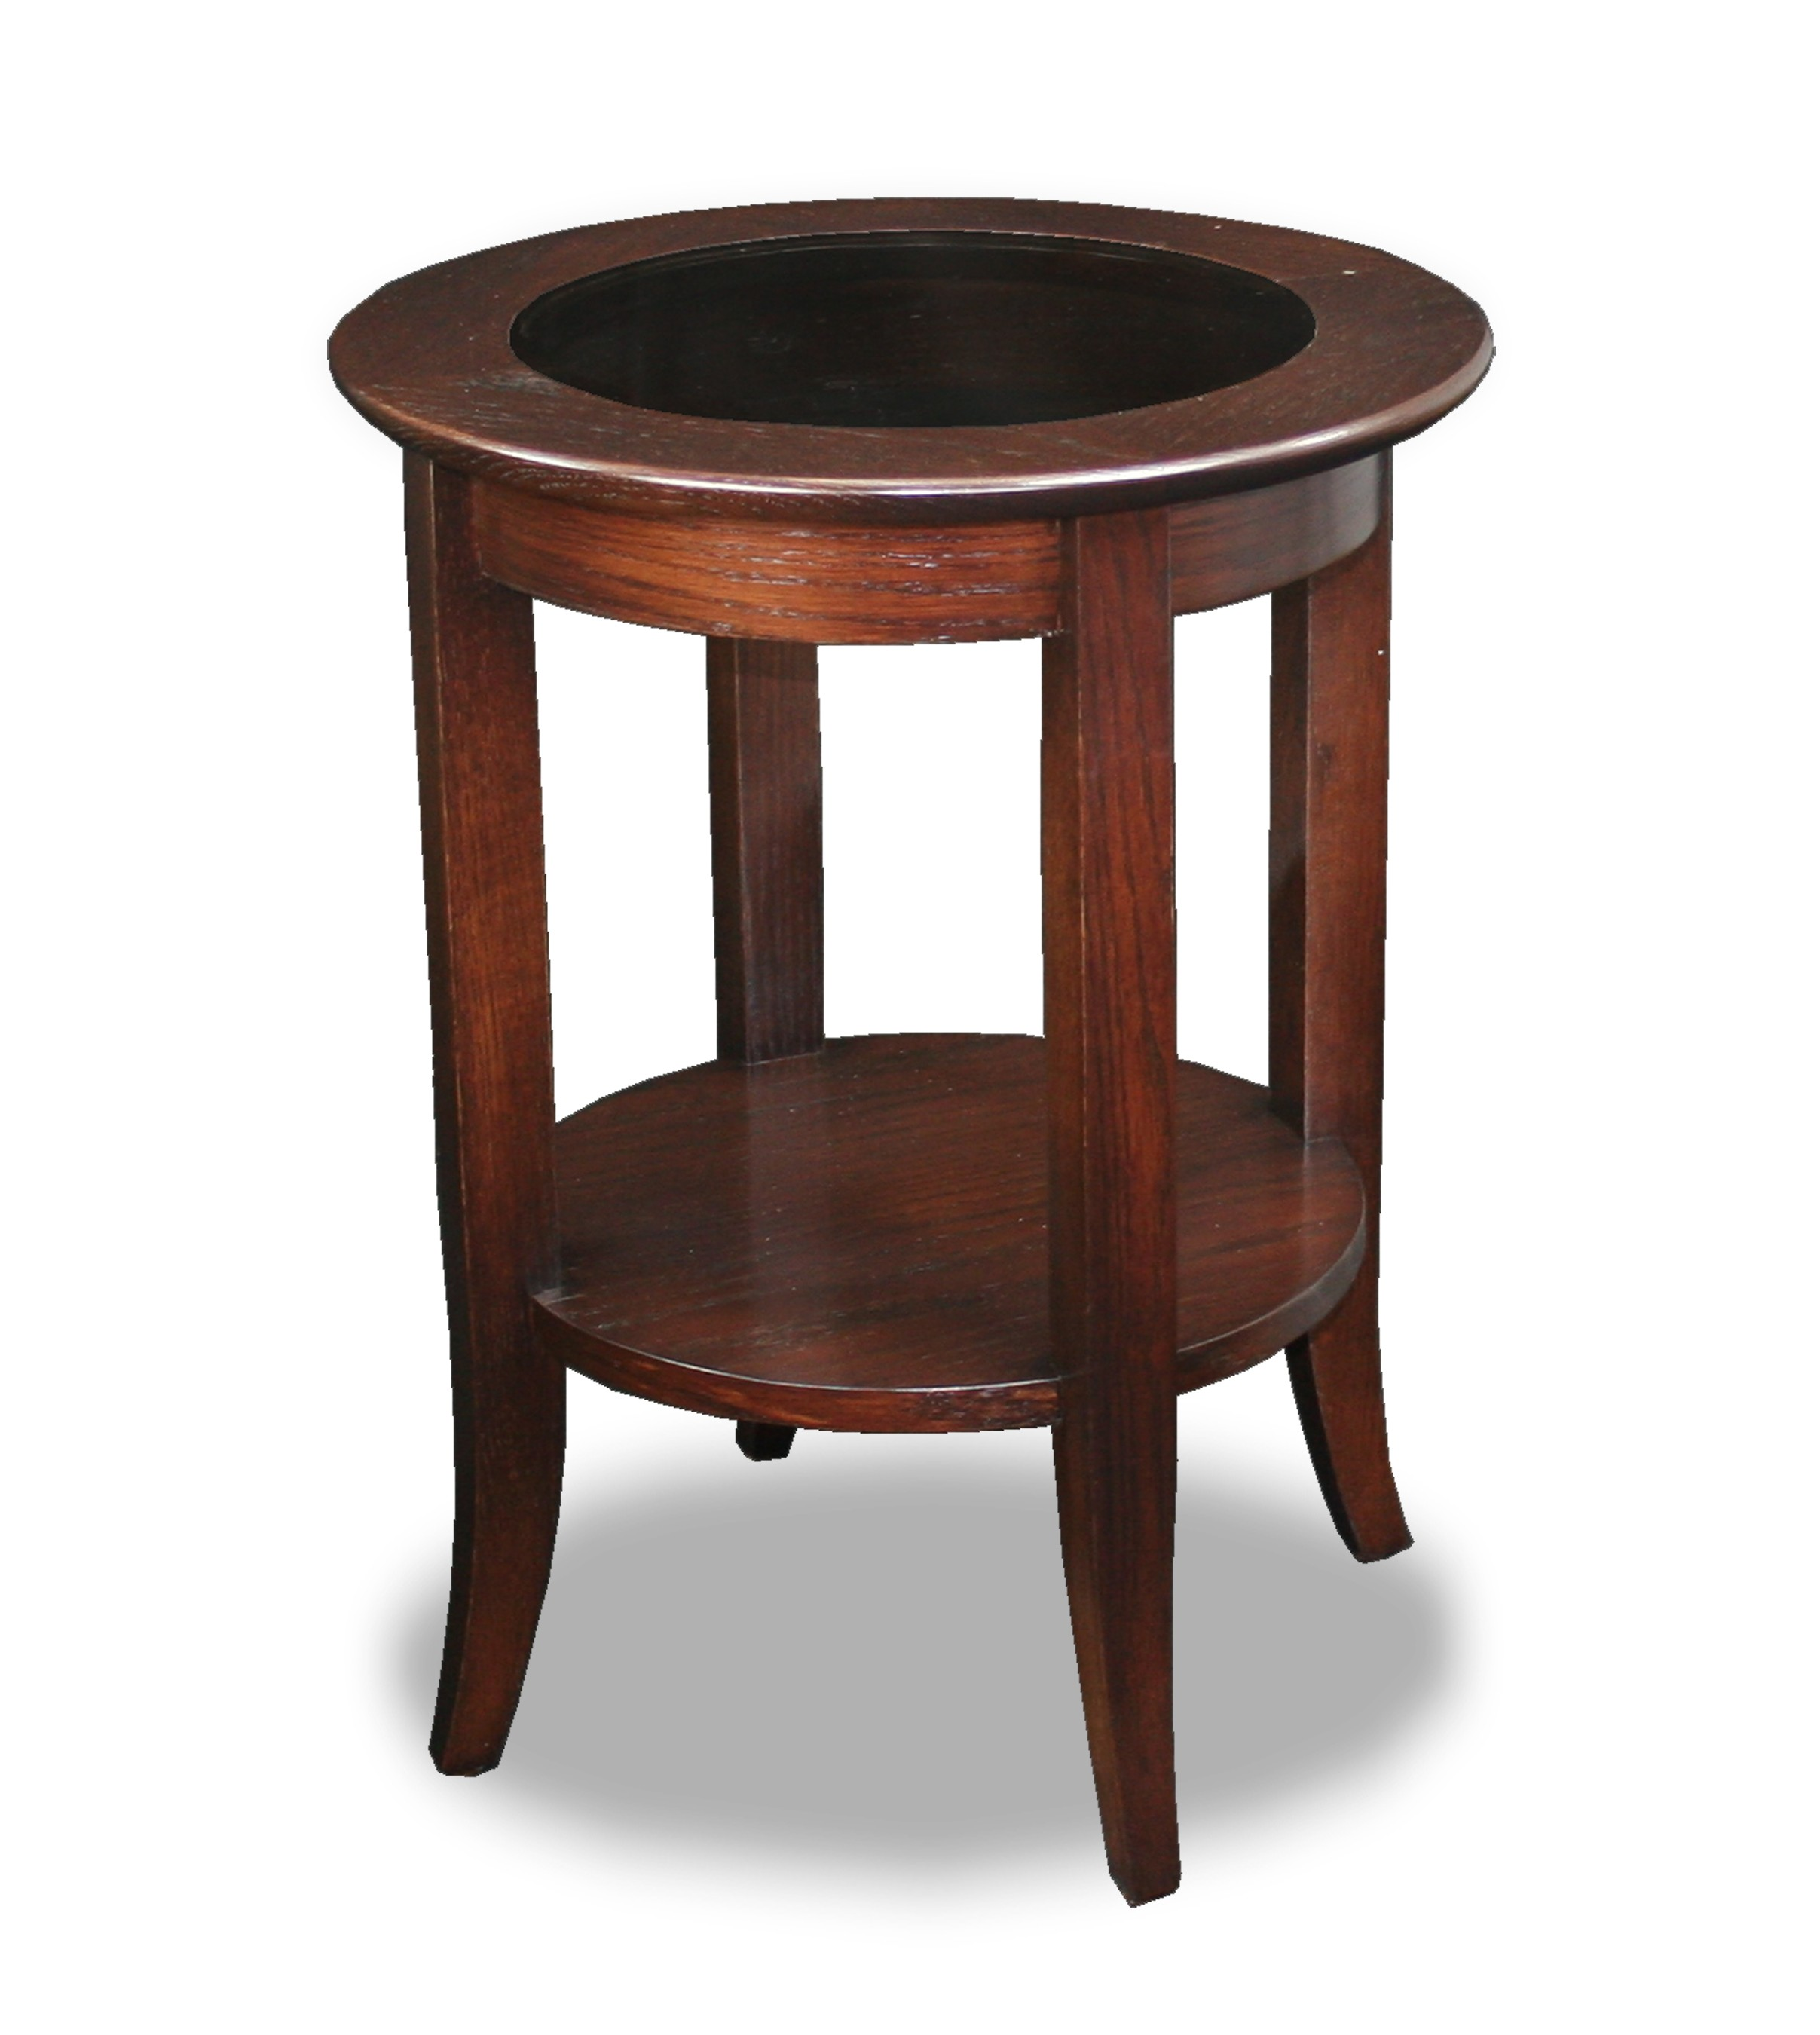 accent tables round table black living room end wood with storage corner for tall side coffee and set dark teal circular drawer full size best small rectangular big green egg pier